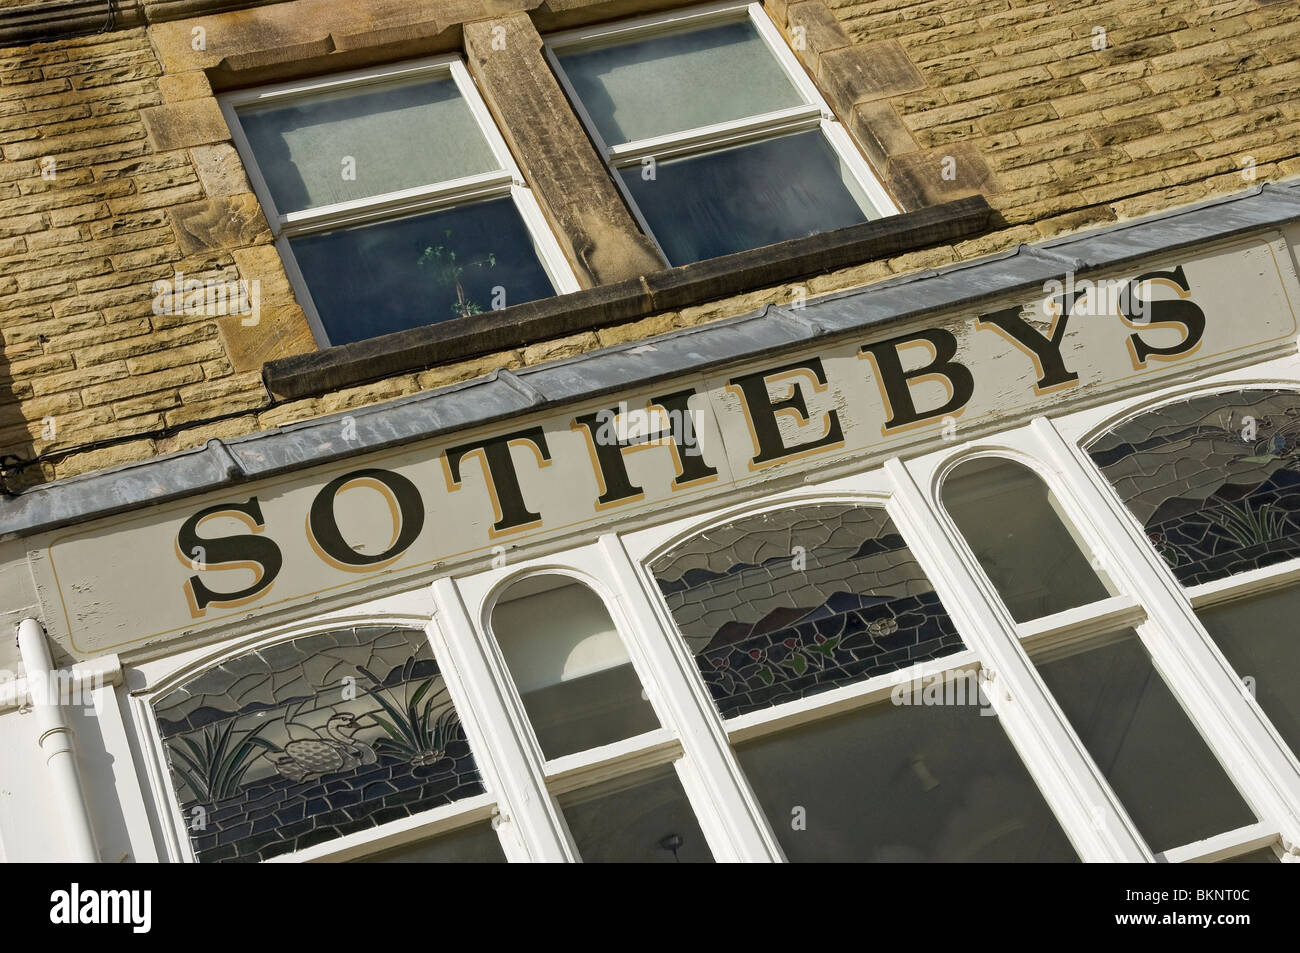 Sign above the former Sotheby's auctioneer shop in Harrogate North Yorkshire England UK United Kingdom GB Great - Stock Image